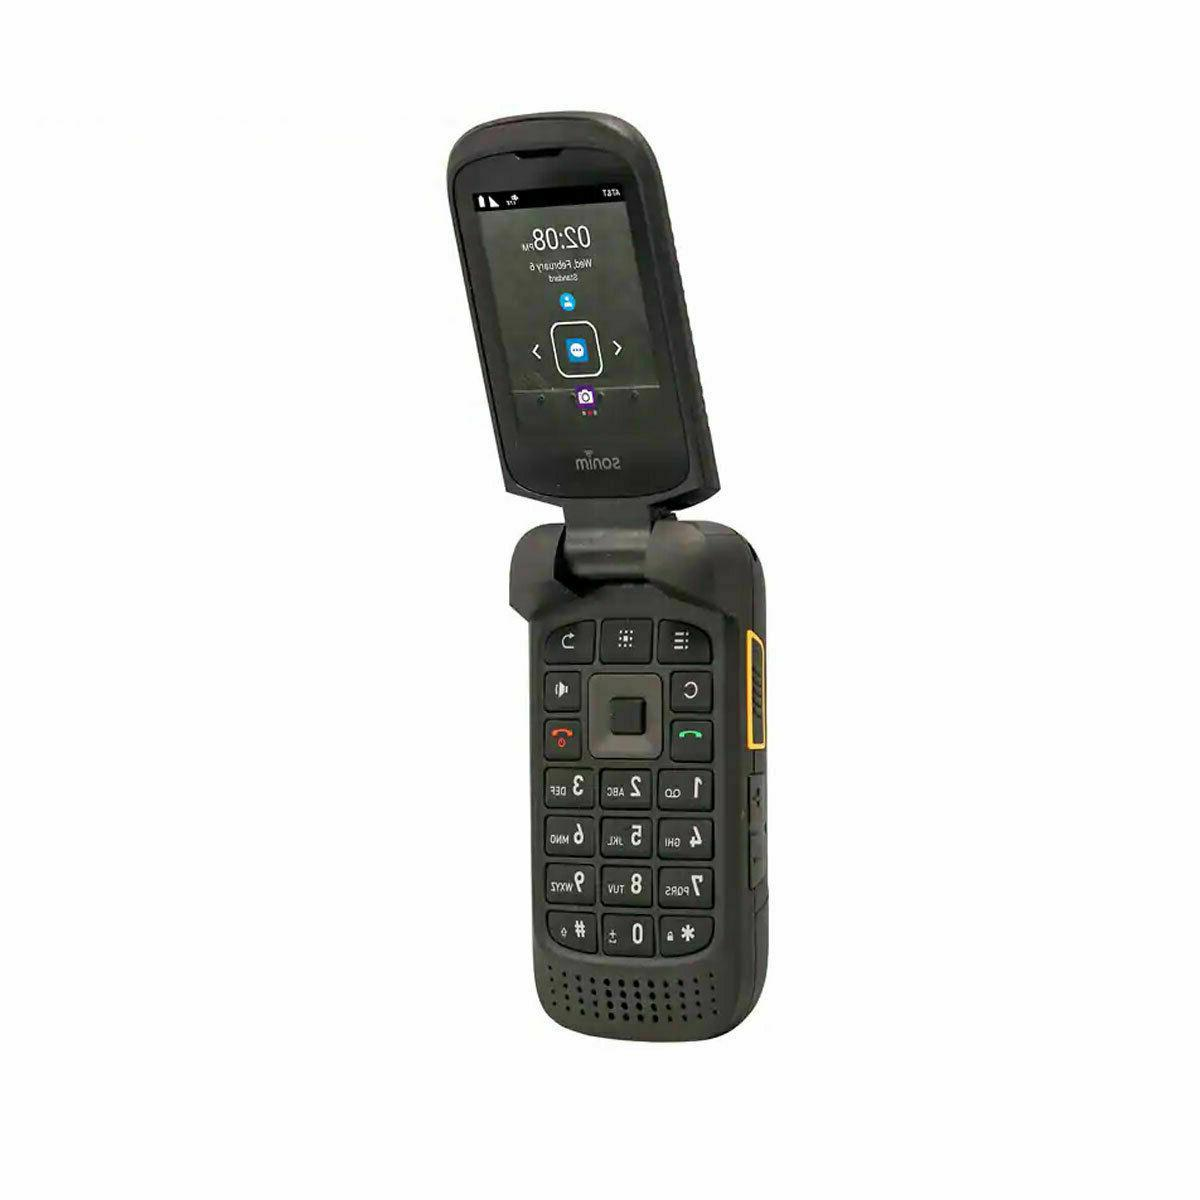 New XP3800 | 4G | 8GB Phone- Great